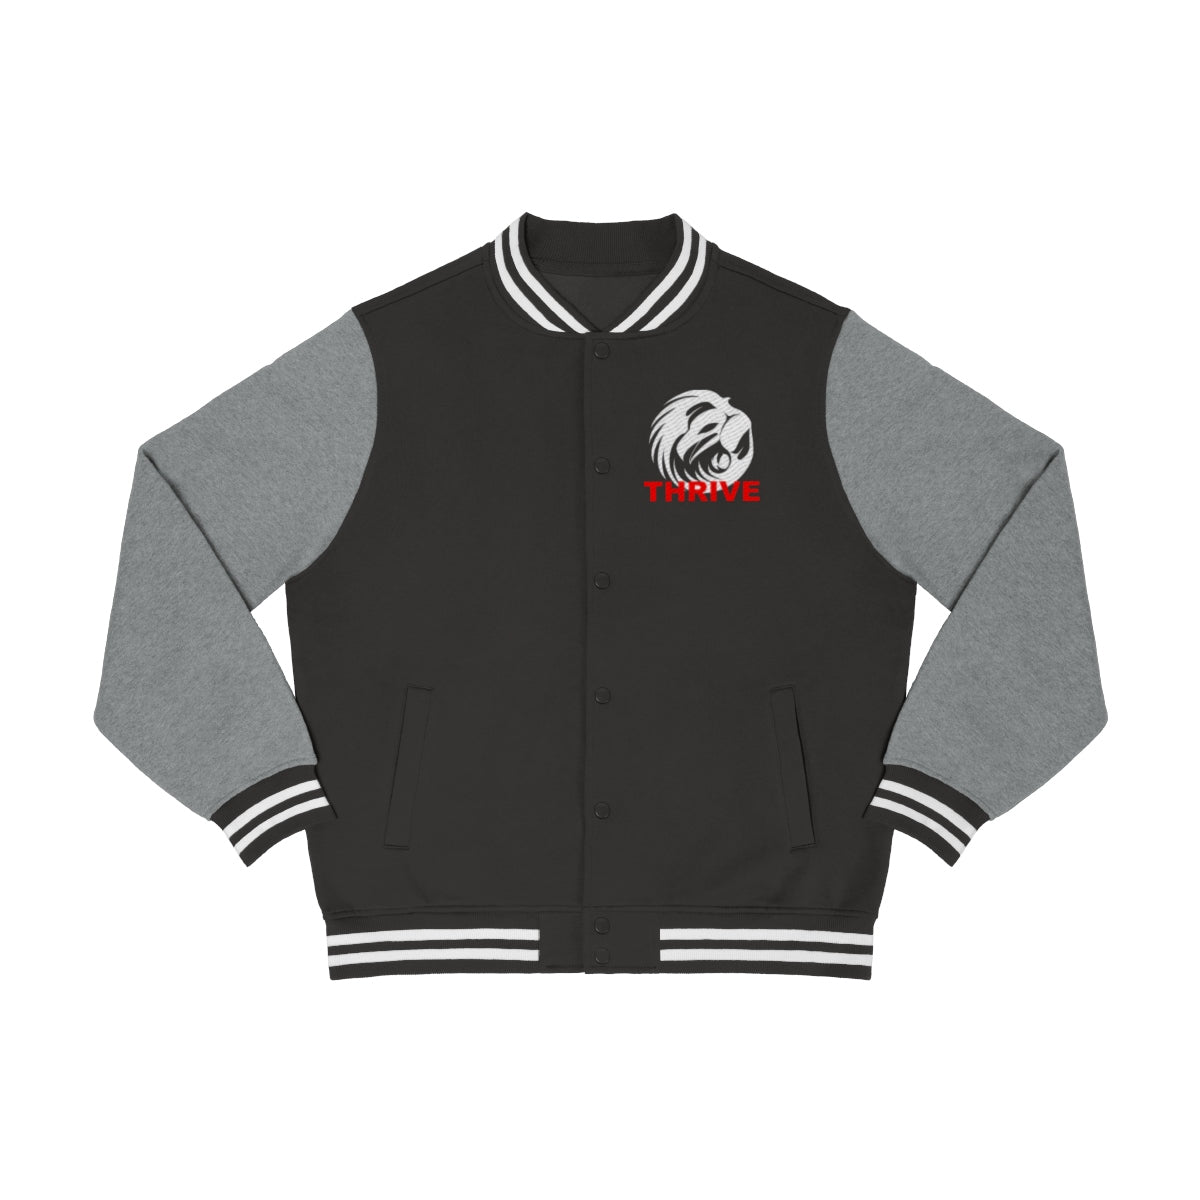 Unisex Thrive Varsity Jacket